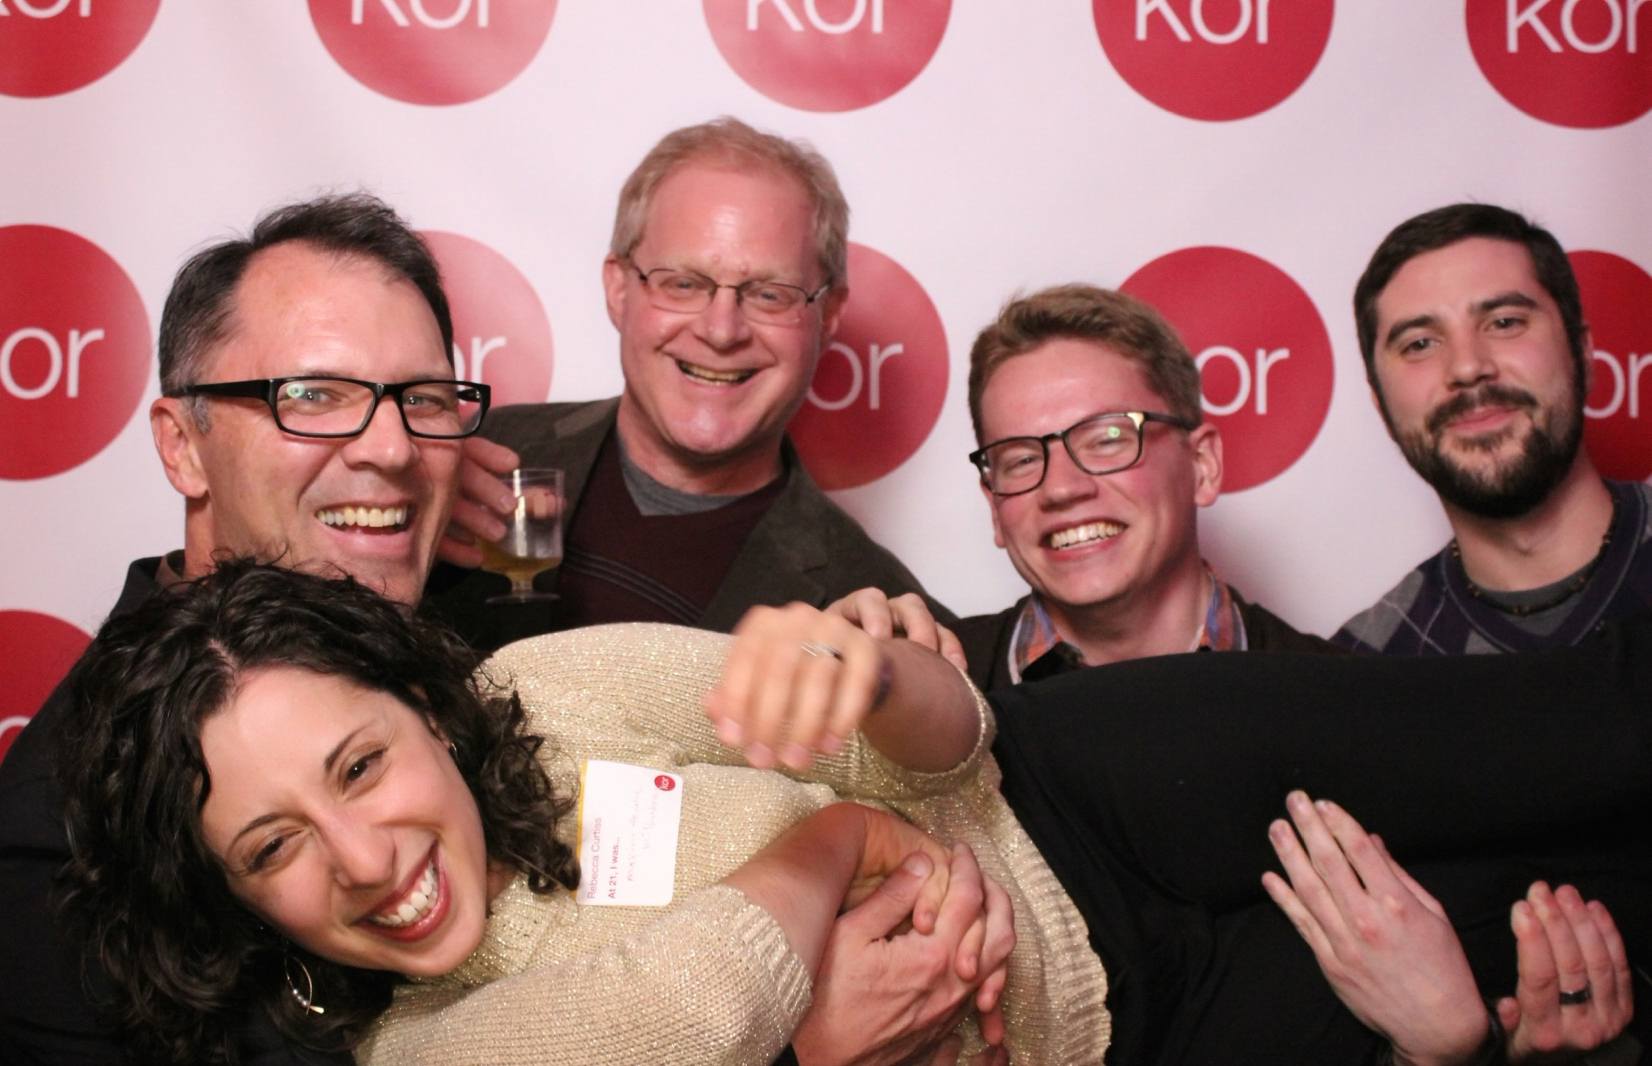 Our team horsing around at a recent party hosted by one of our design partners.